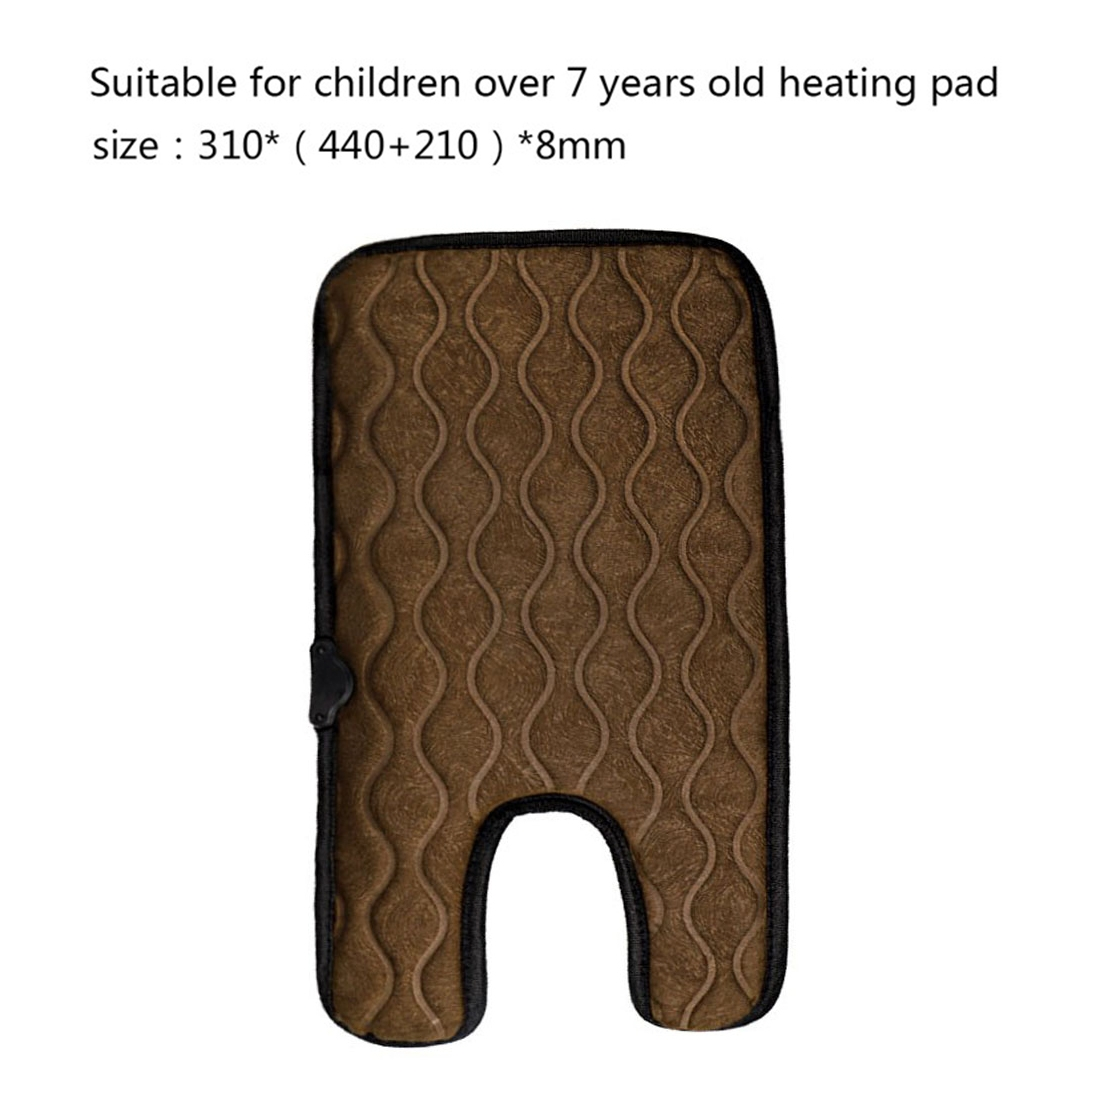 Universal Baby Car Cigarette Lighter Plug Seat Cover Warm Seat Heating Baby Electric Seat Heating Pad, Size: 310x (440+210)x8mm (Brown)